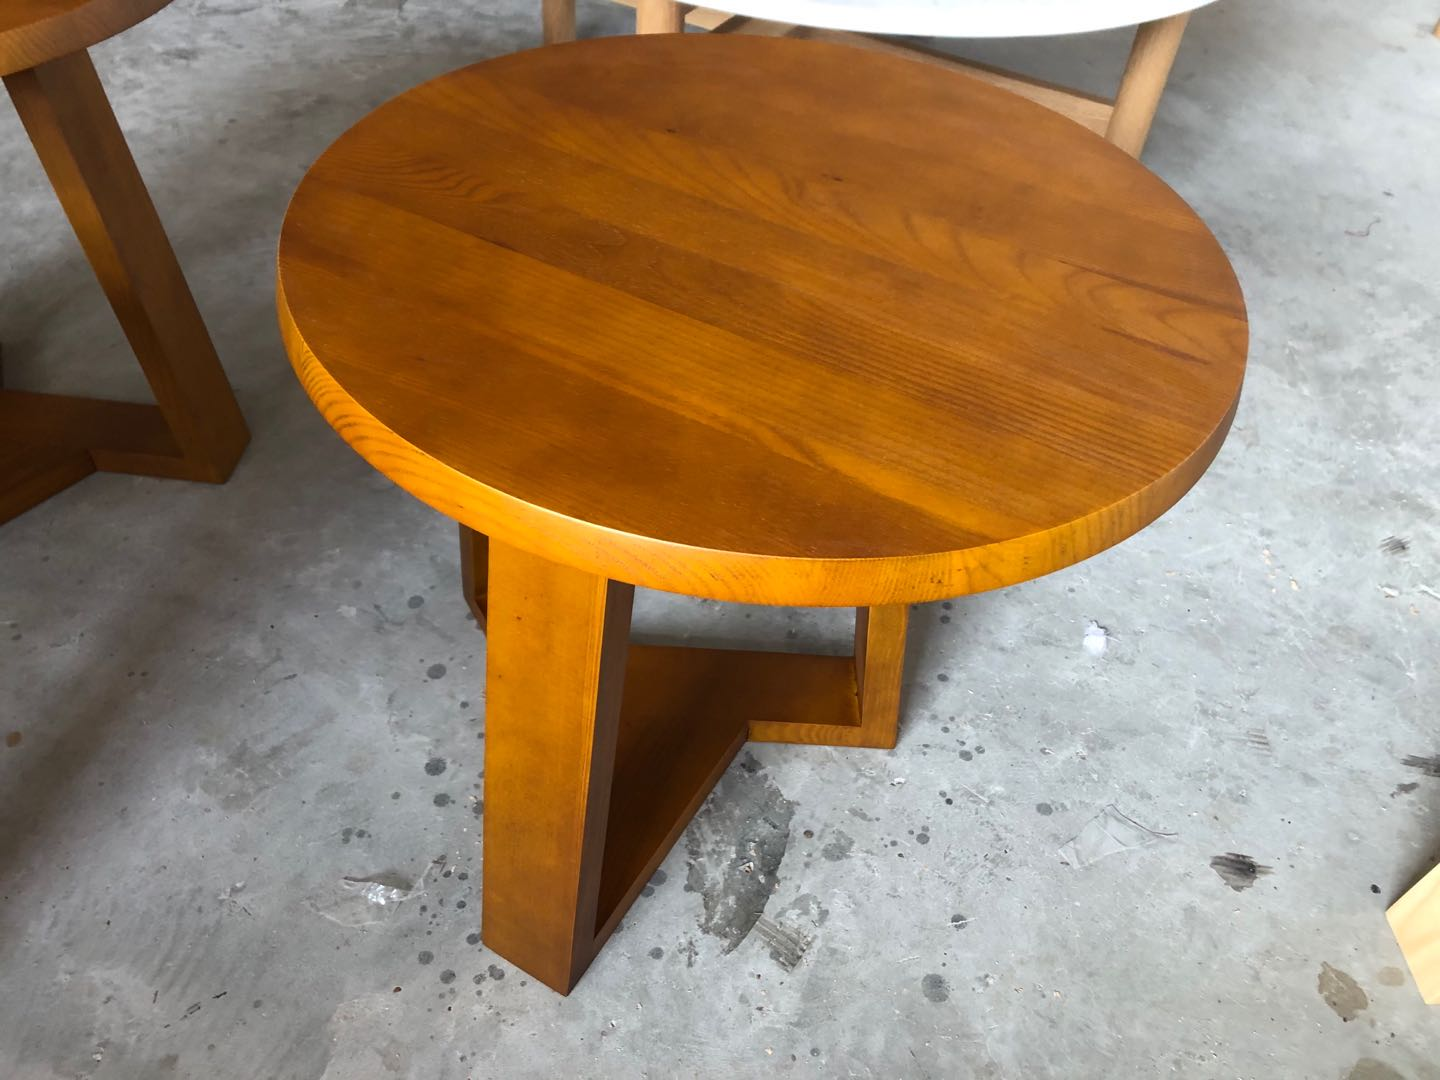 Restaurant cafe coffee table solid wood stained